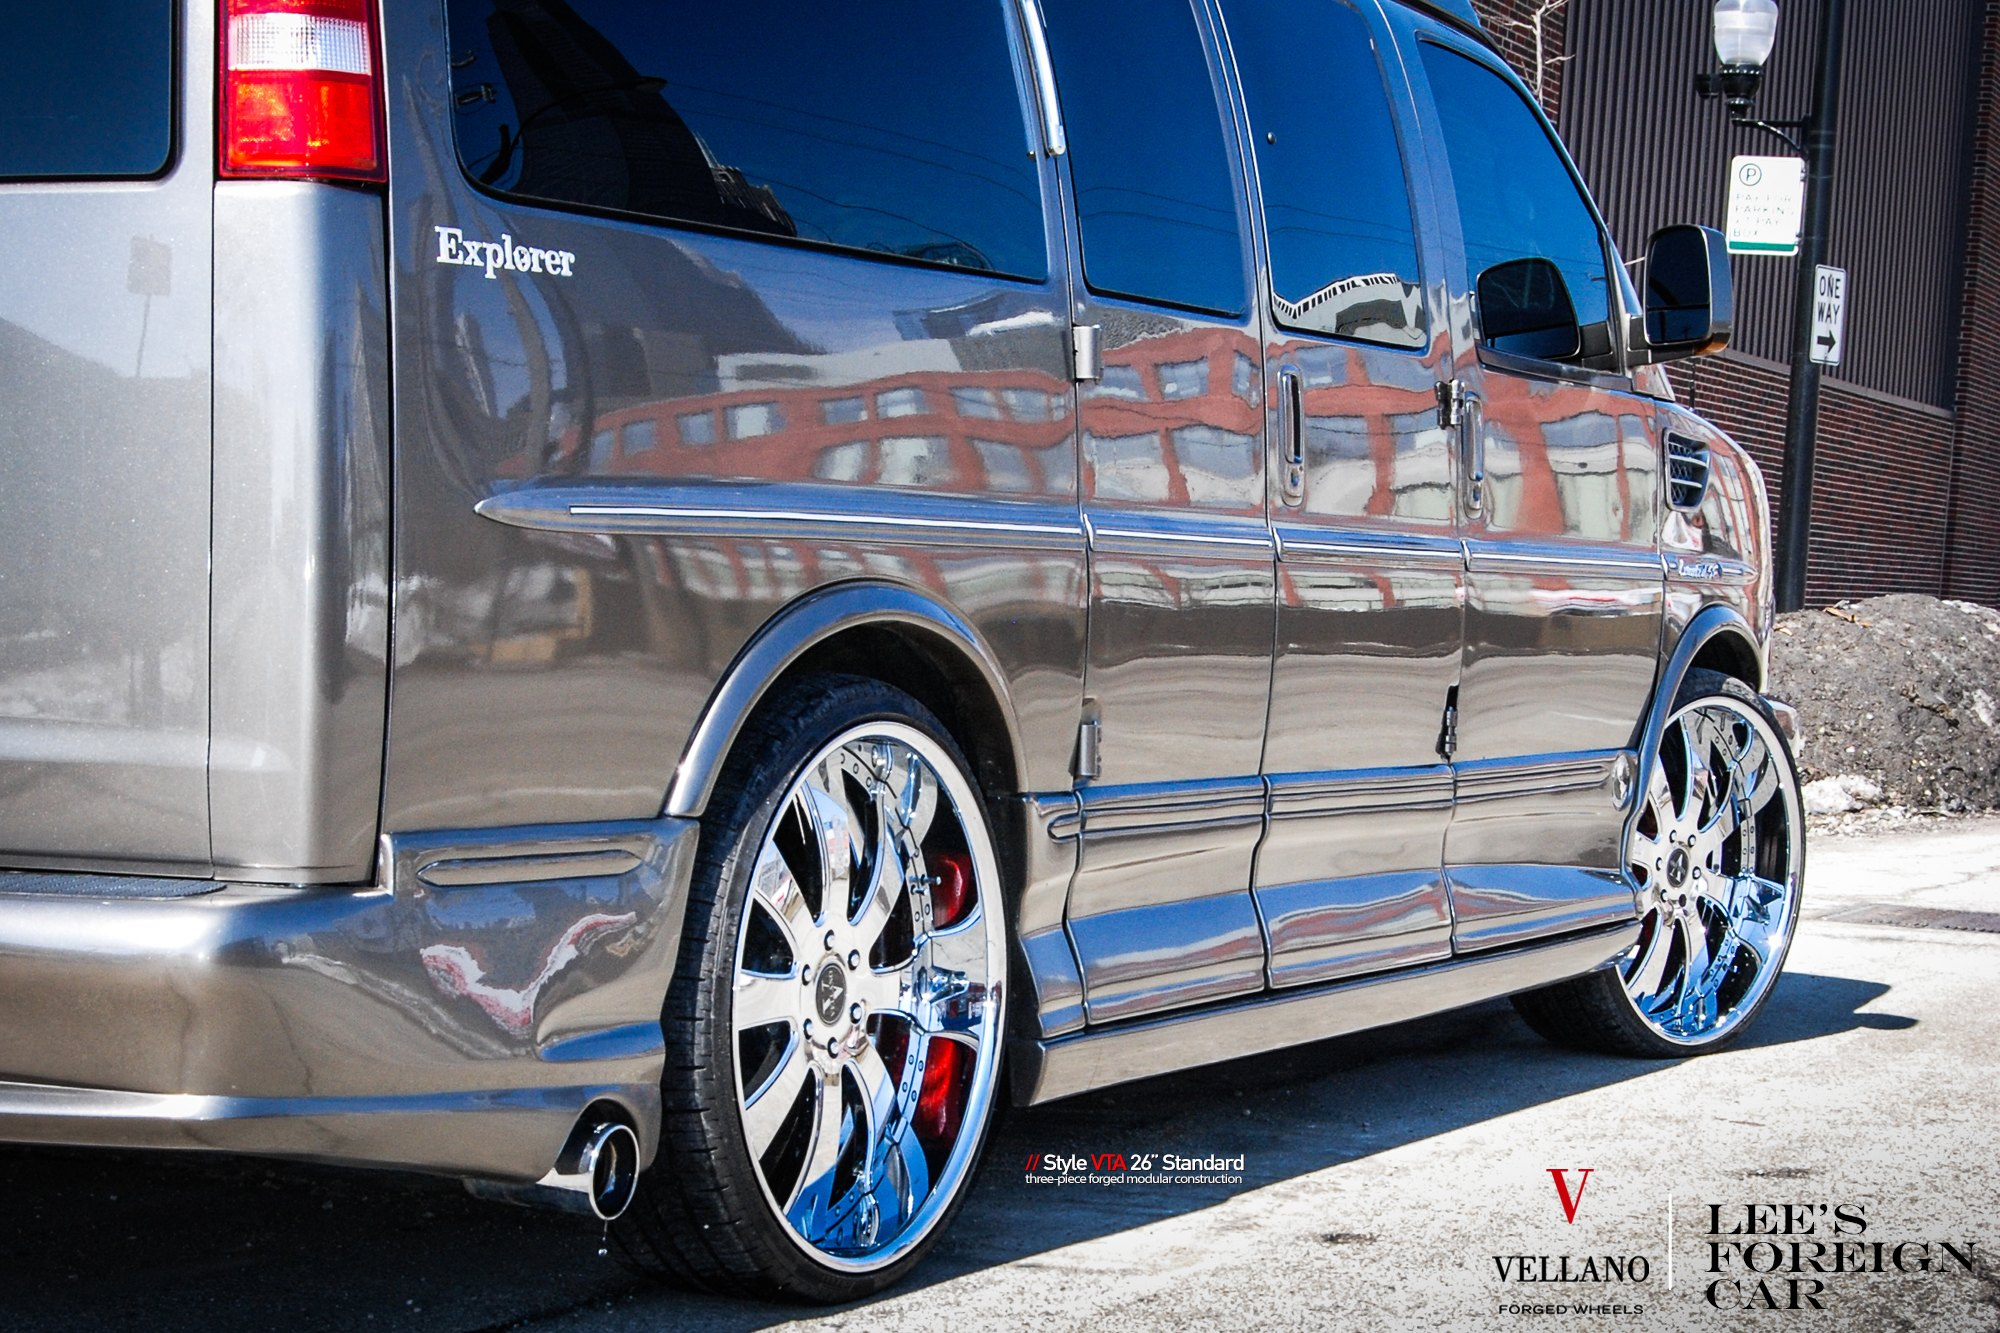 Aftermarket Side Skirts On Gray Chevy Express